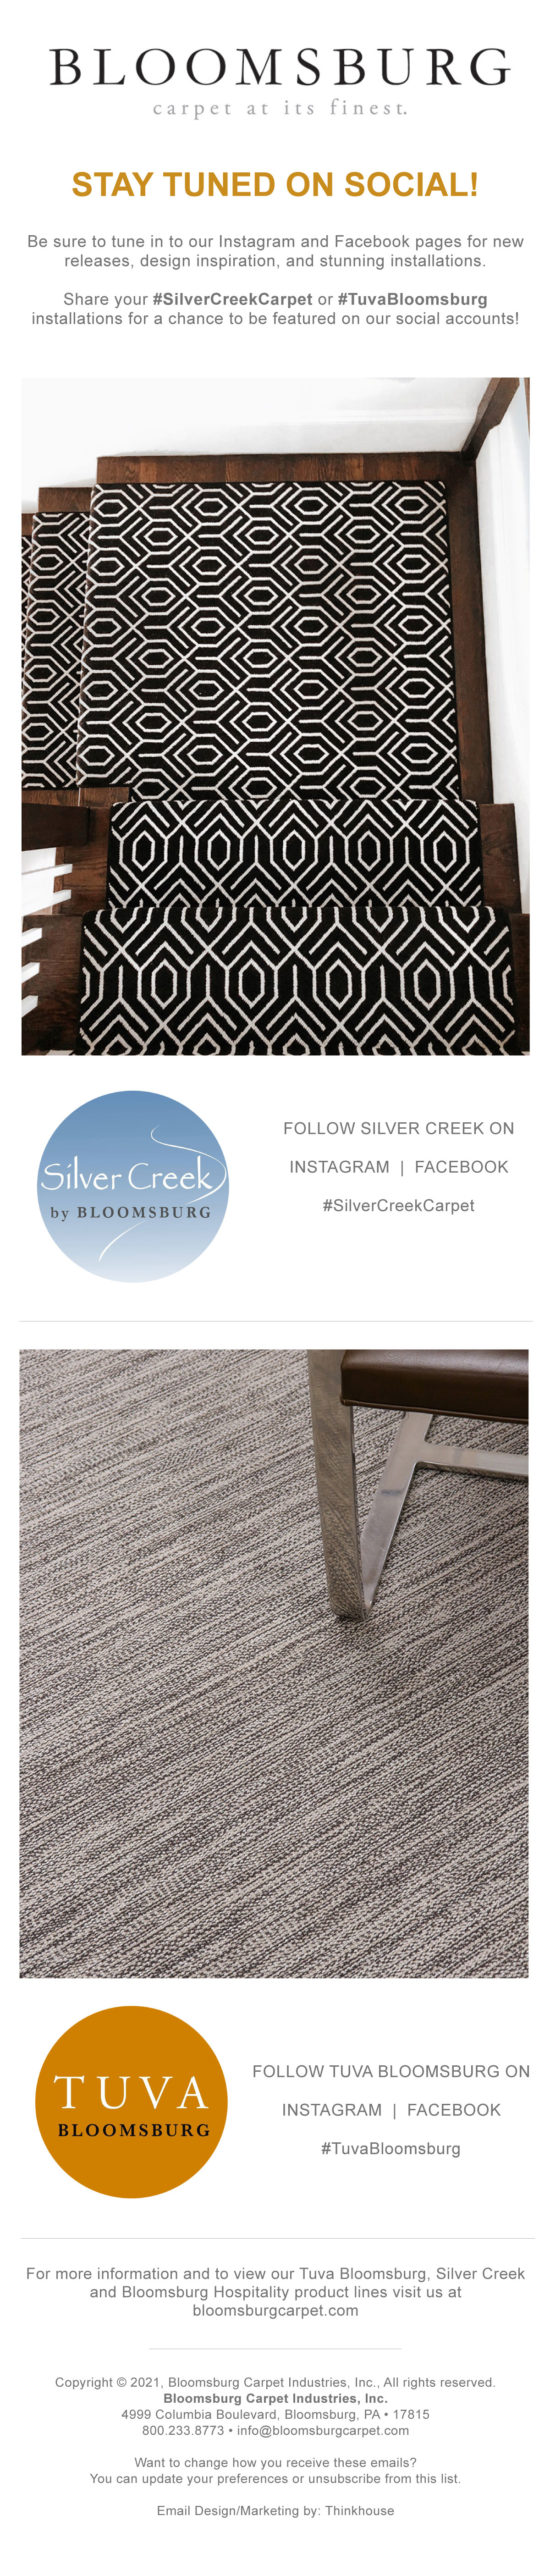 Bloomsburg Carpet   Stay tuned on social!